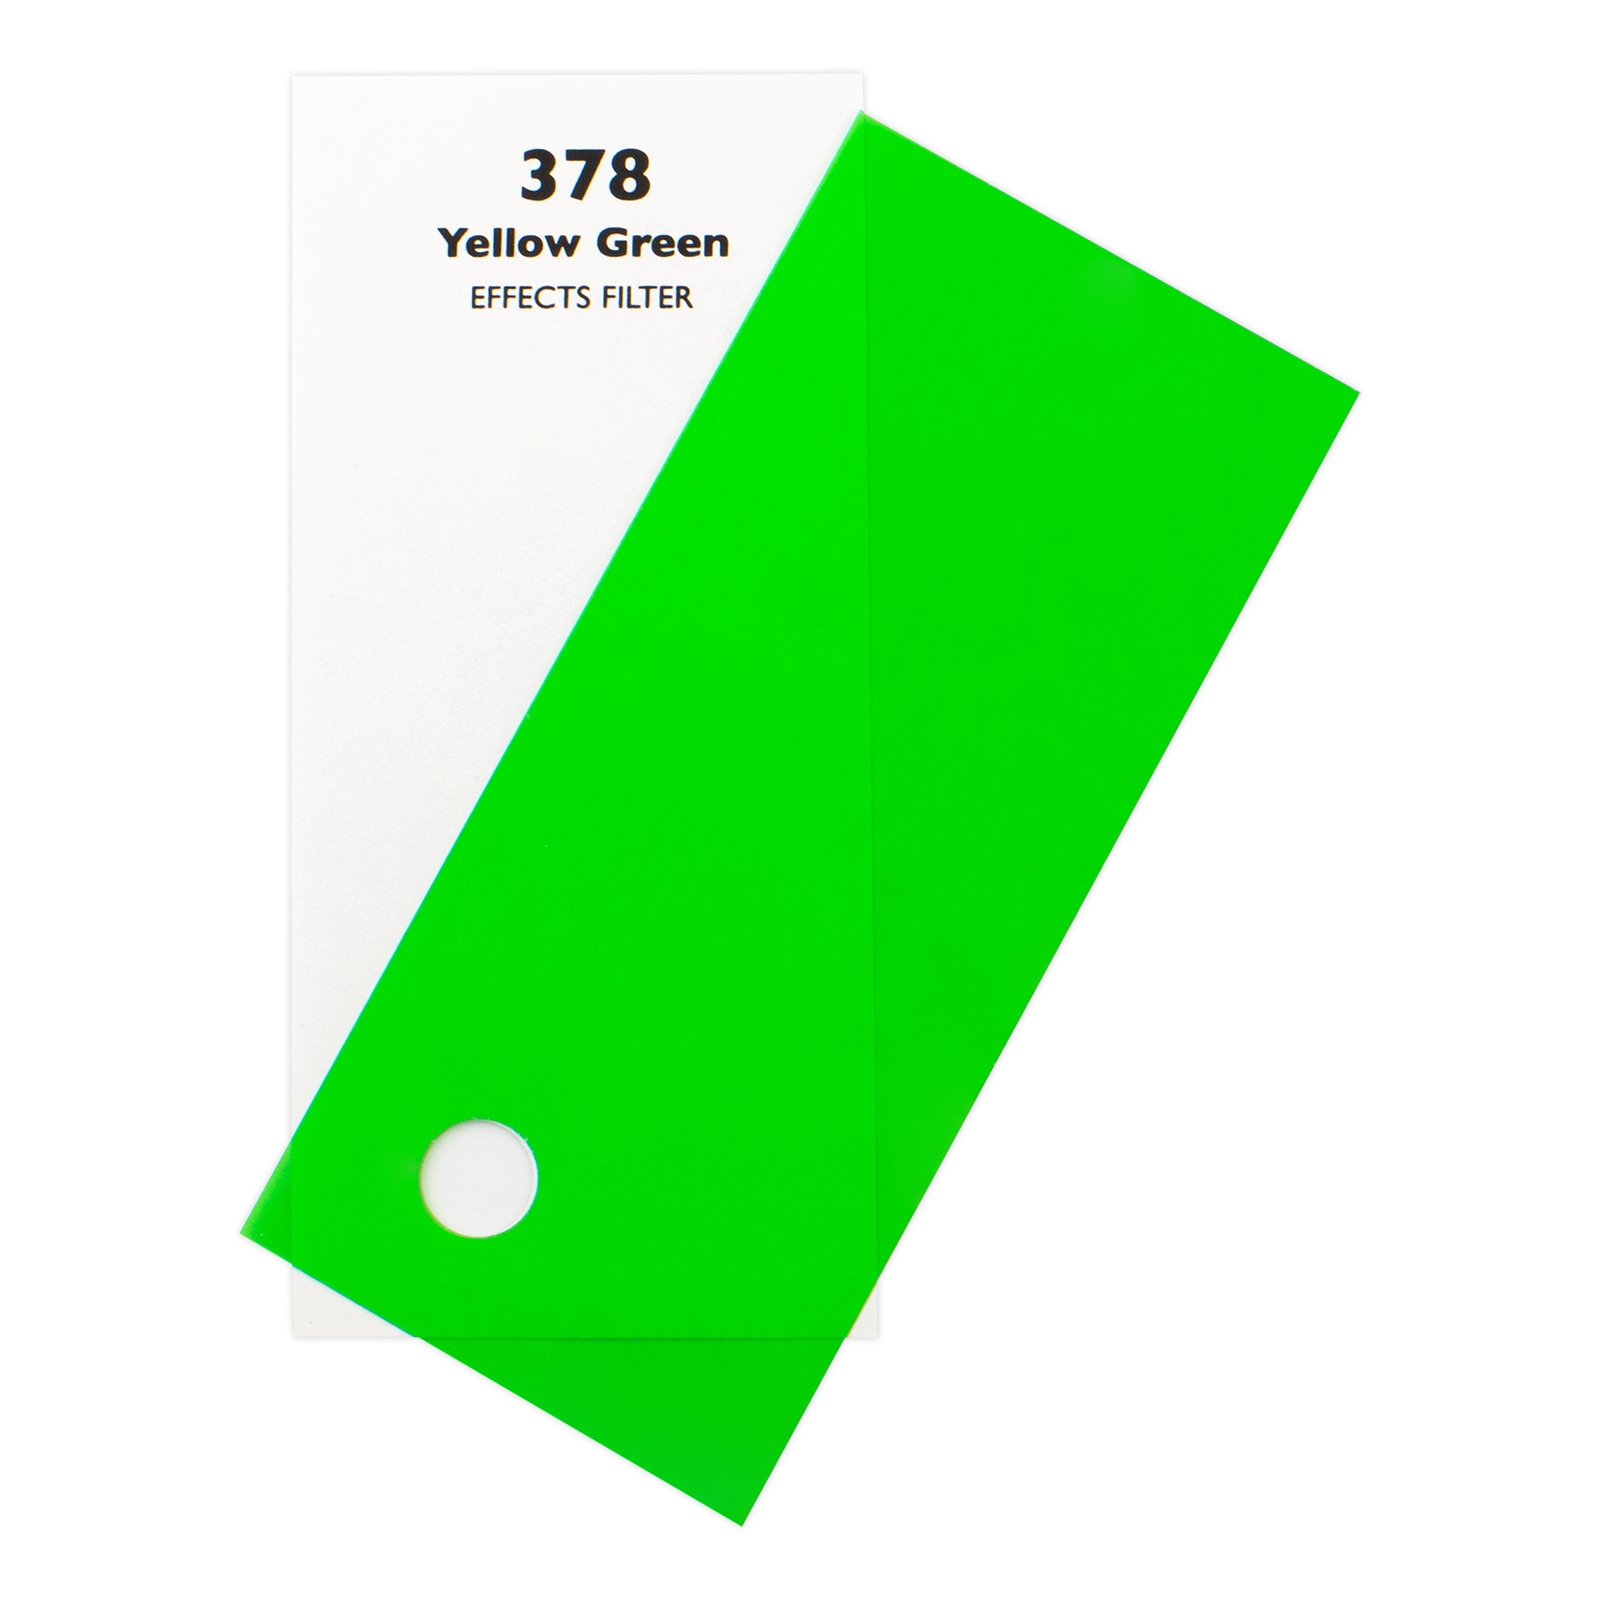 Светофильтр Chris James 378 Yellow Green 1.00 м х 1.22 м